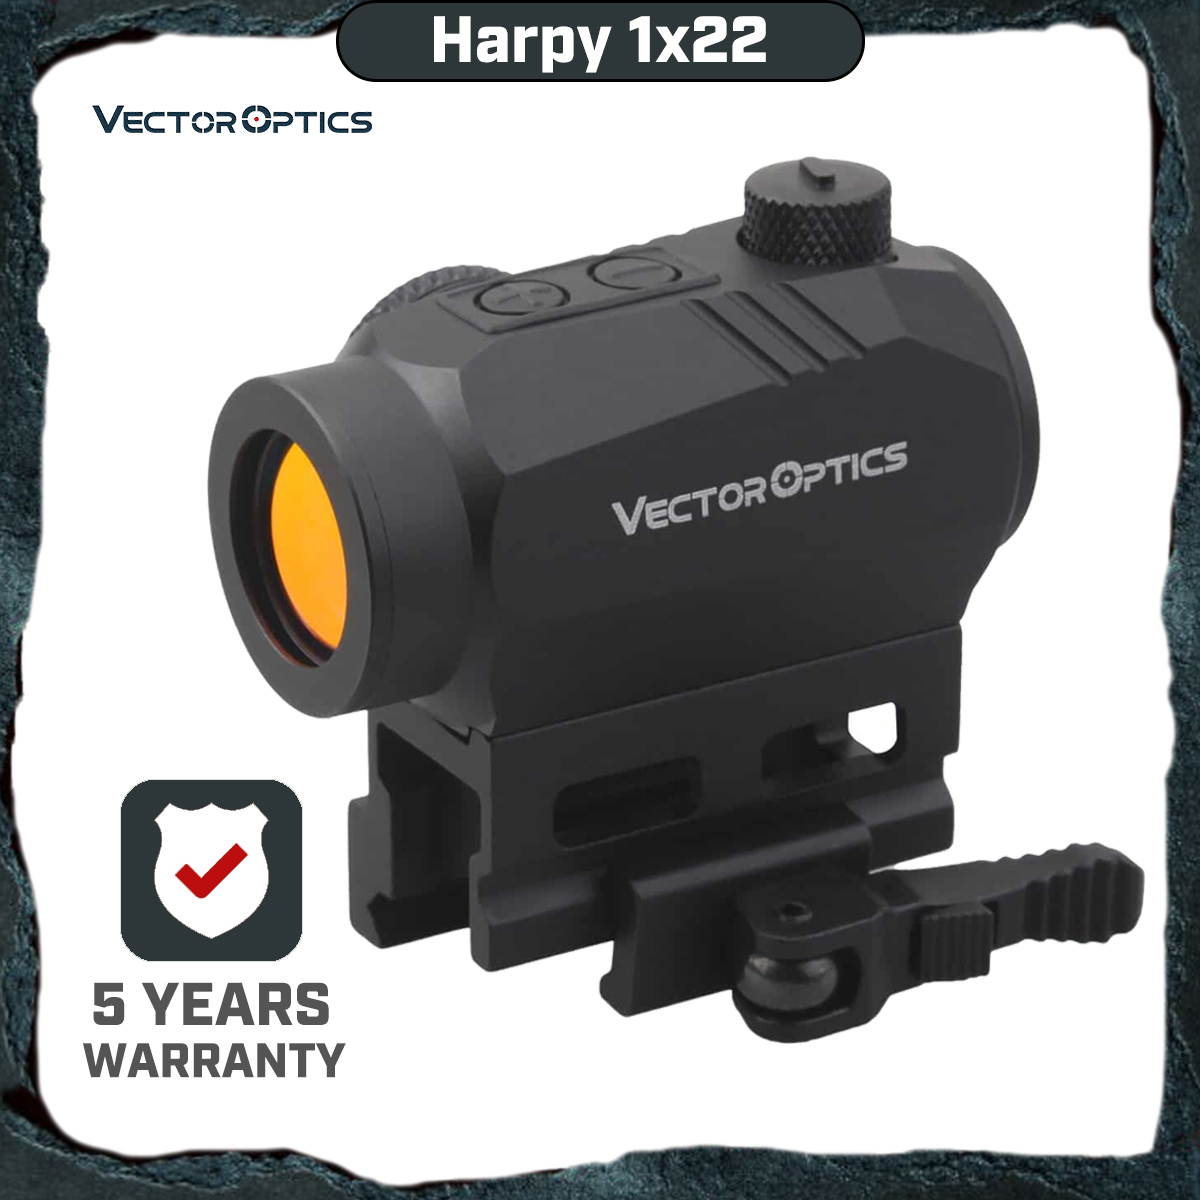 Vector Optics Harpy 1x22 Red Dot Sight Scope With QD Riser Picatinny Mount